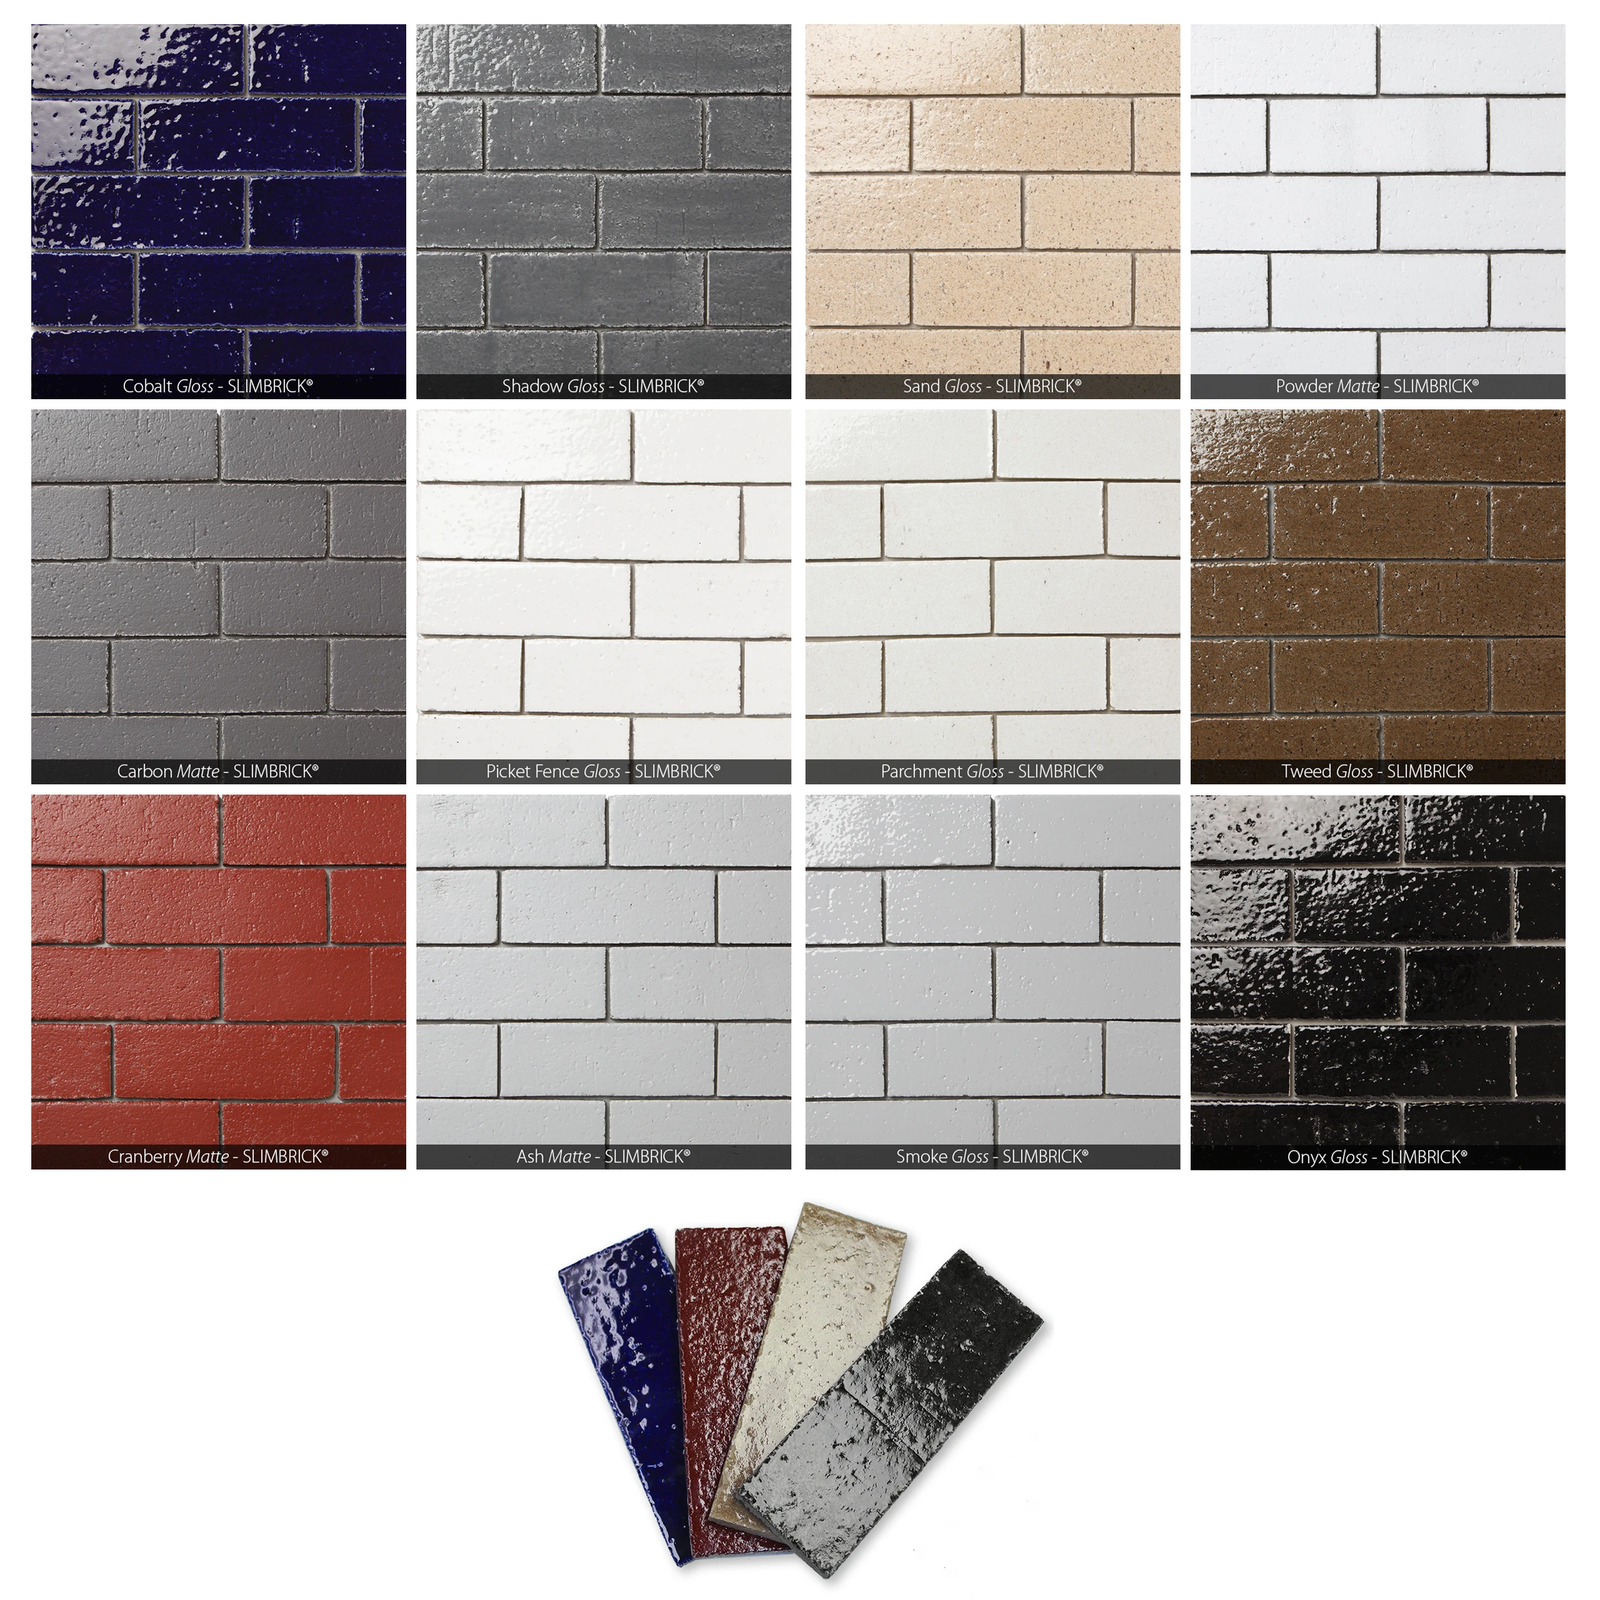 GLAZED SLIMBRICK® SAMPLE 4 PACK